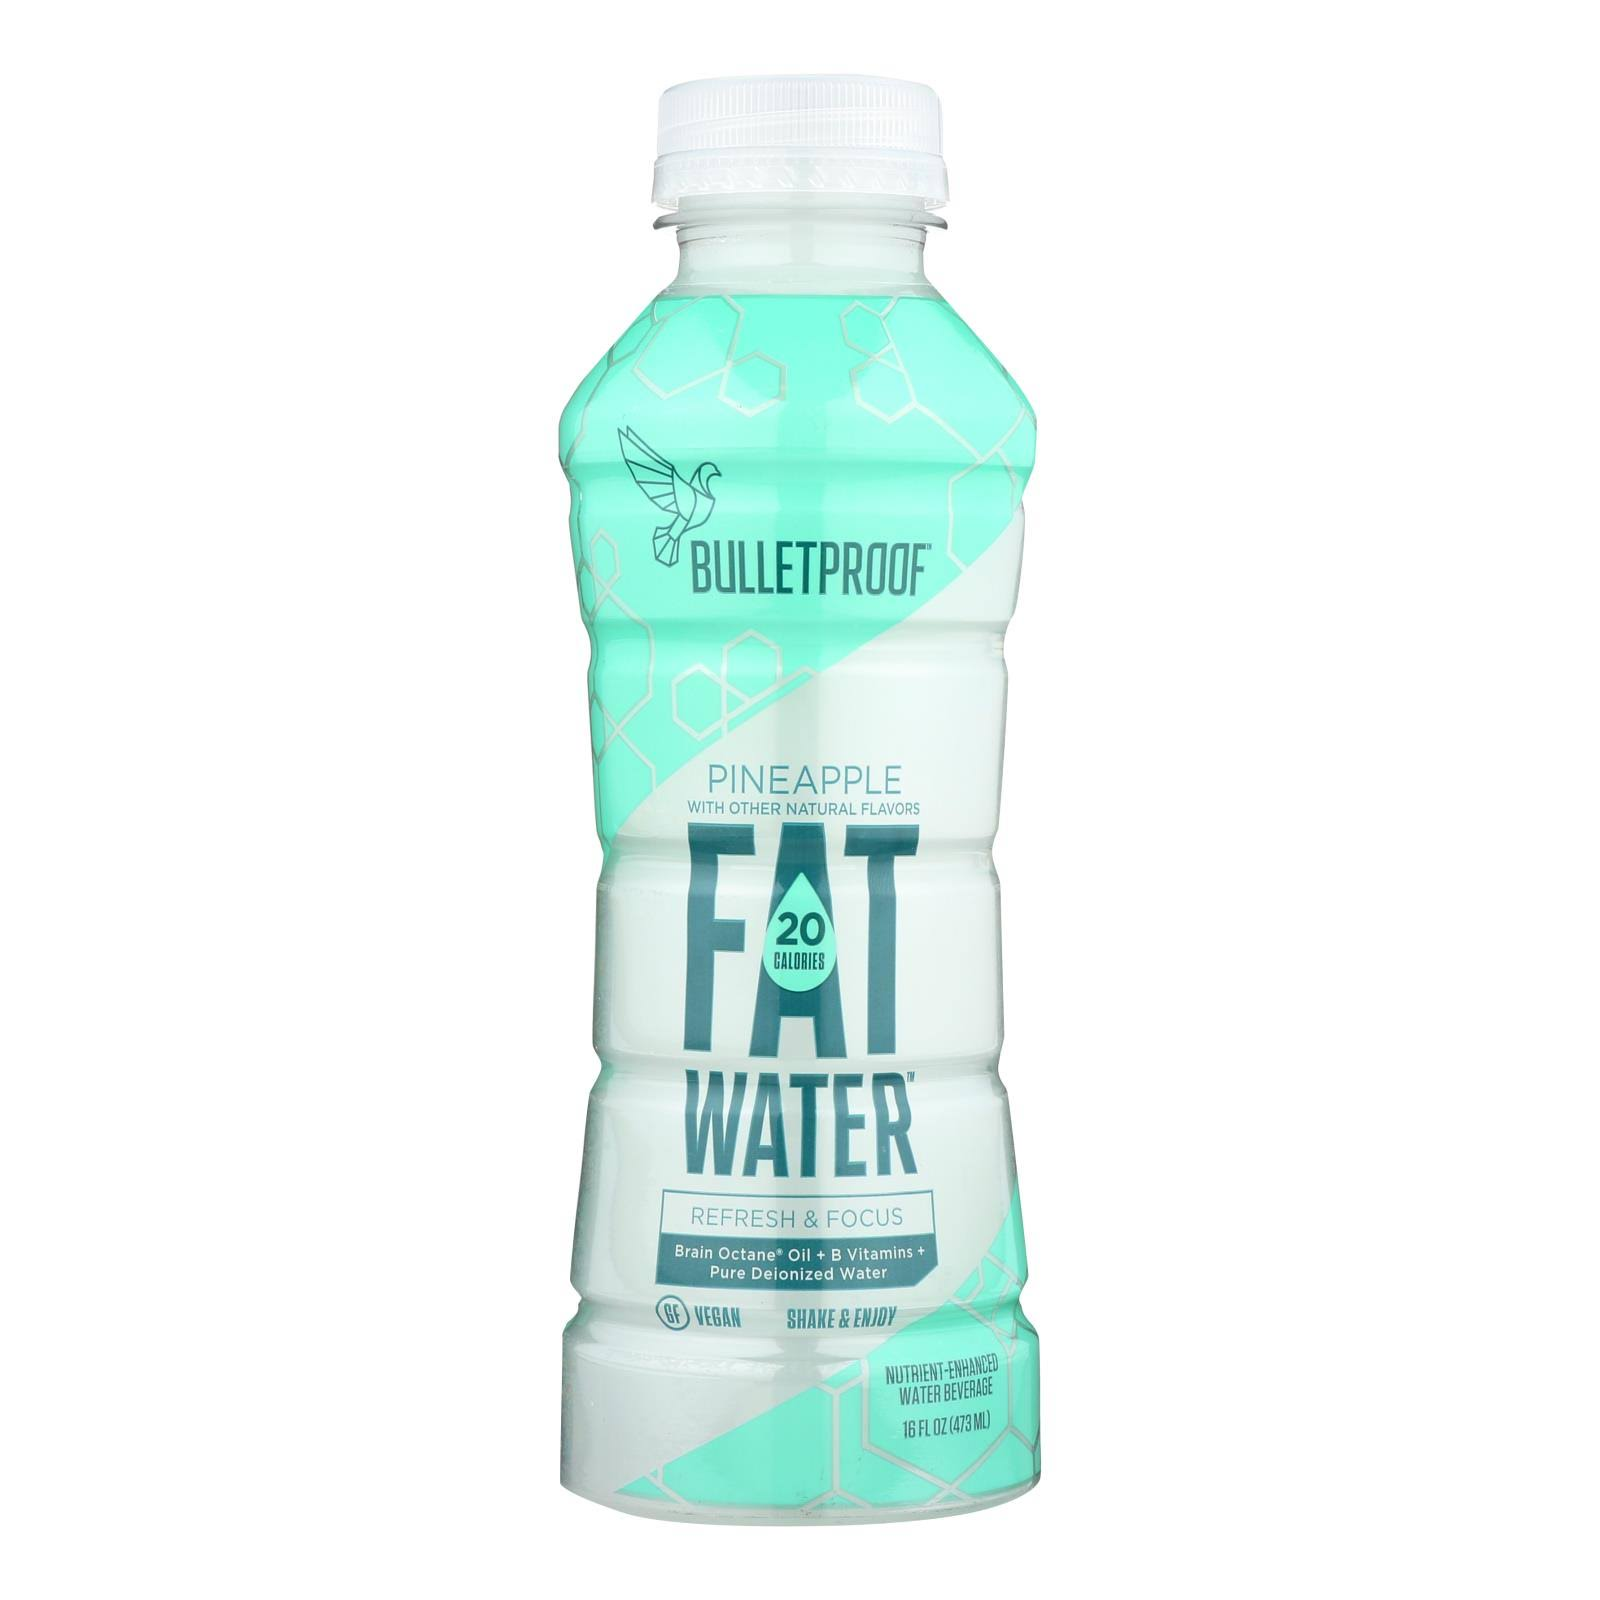 Bulletproof Fat Water, Pineapple - 16 fl oz bottle